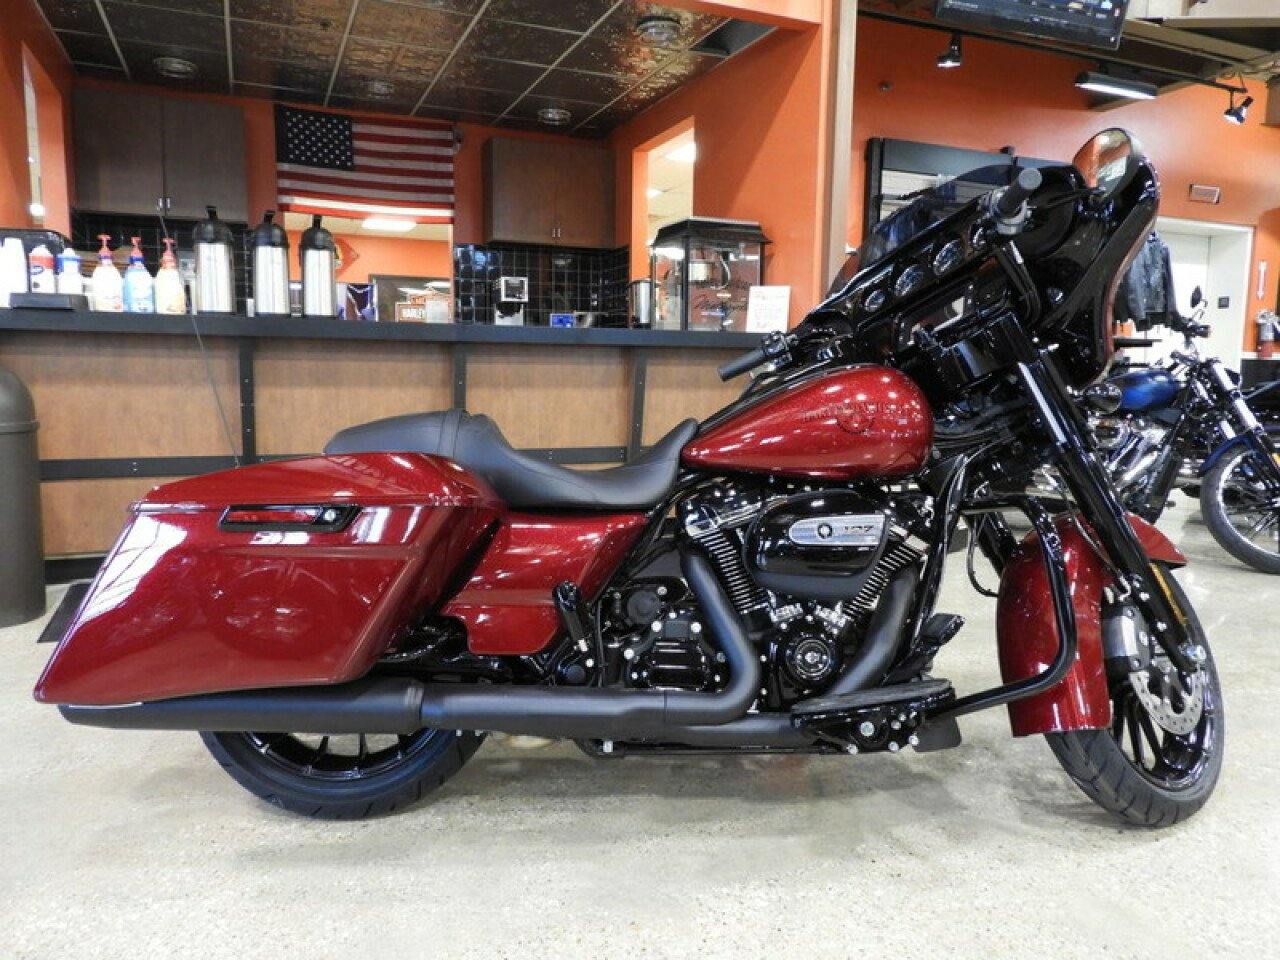 Harley Davidson Touring Motorcycles For Sale Dallas Tx >> 2018 Harley-Davidson Touring Street Glide Special for sale near Garland, Texas 75041 ...